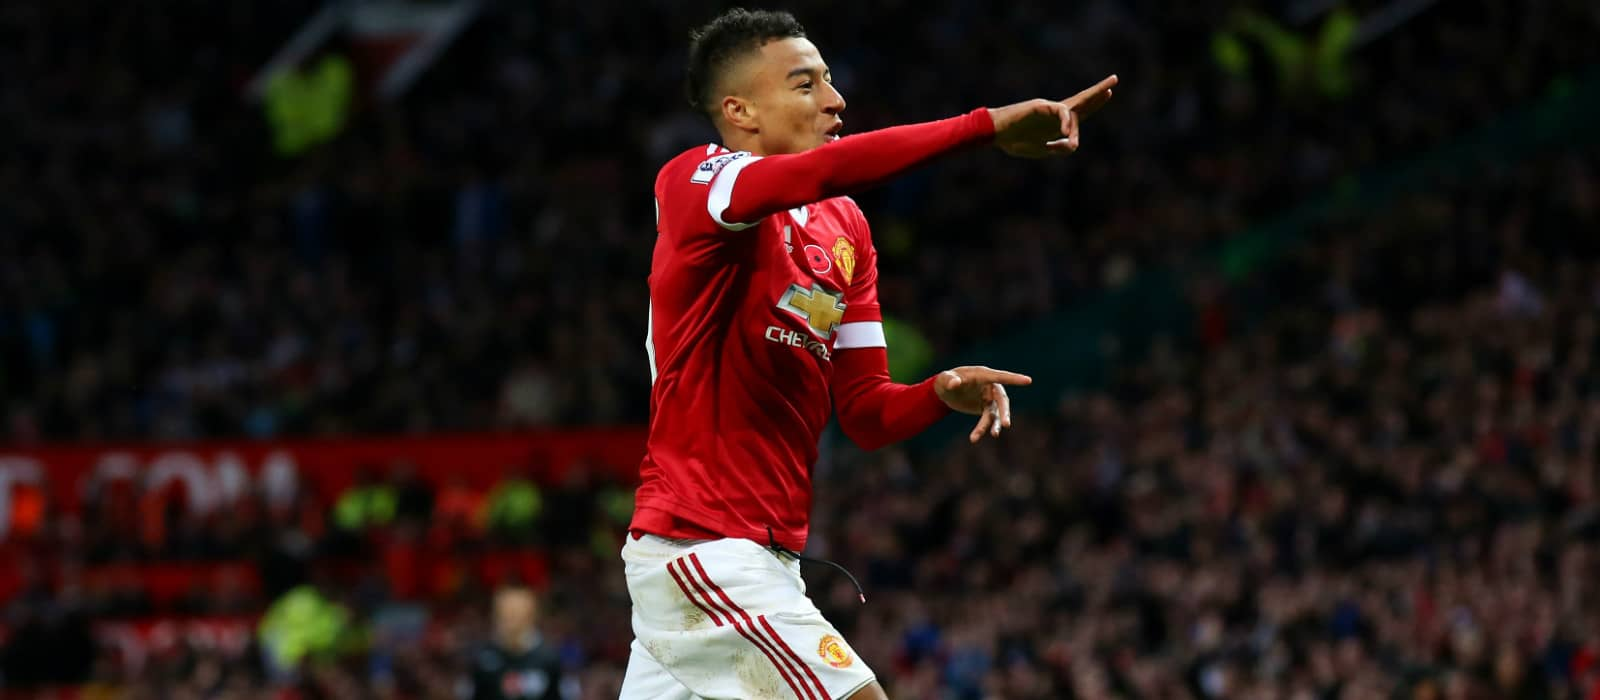 Manchester United fans furious with Jesse Lingard's performance against West Ham